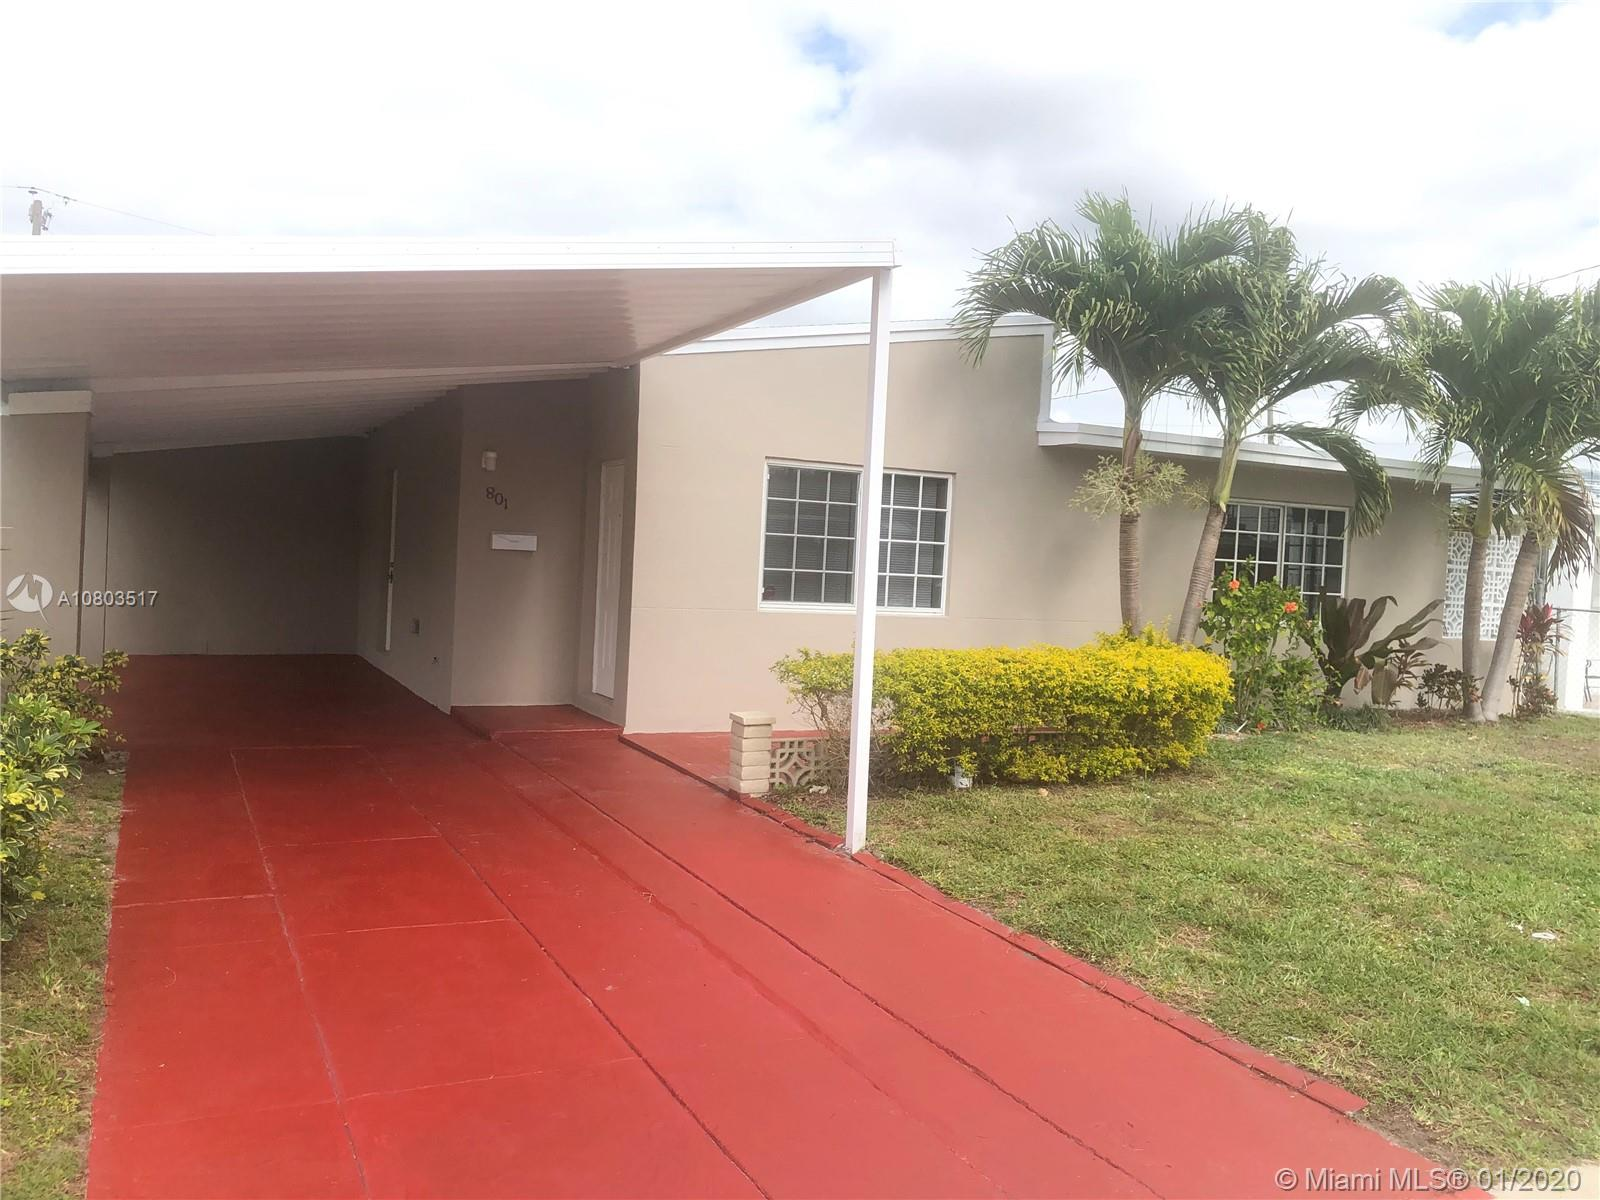 801 NW 84th St  For Sale A10803517, FL